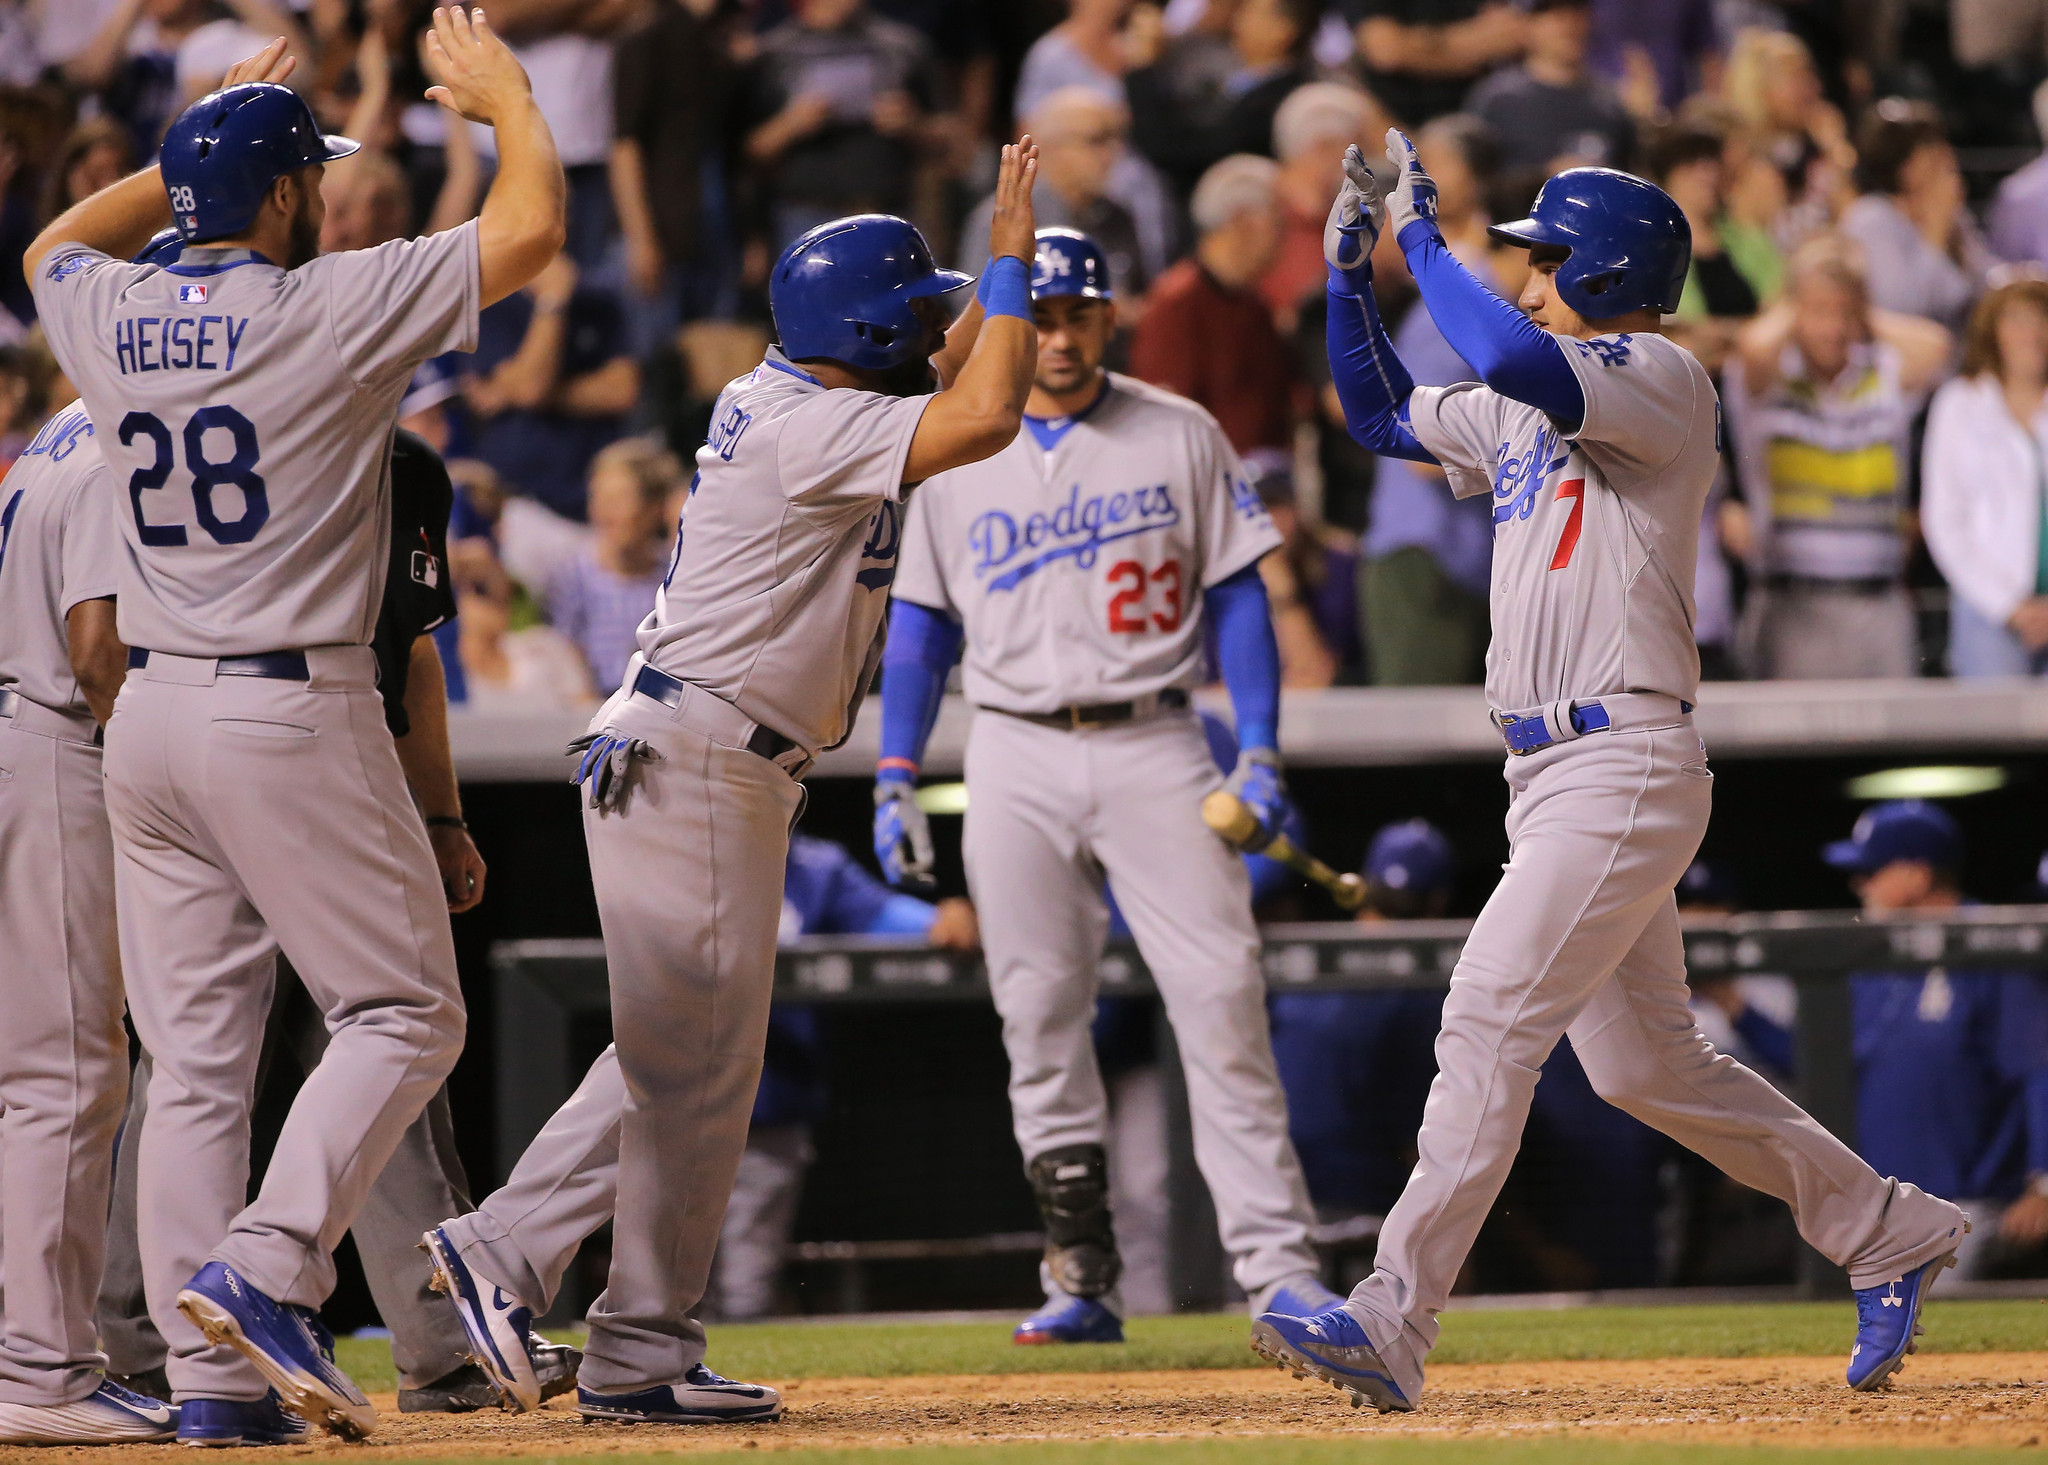 Alex Guerrero's two-out grand slam in ninth lifts Dodgers to 9-8 win